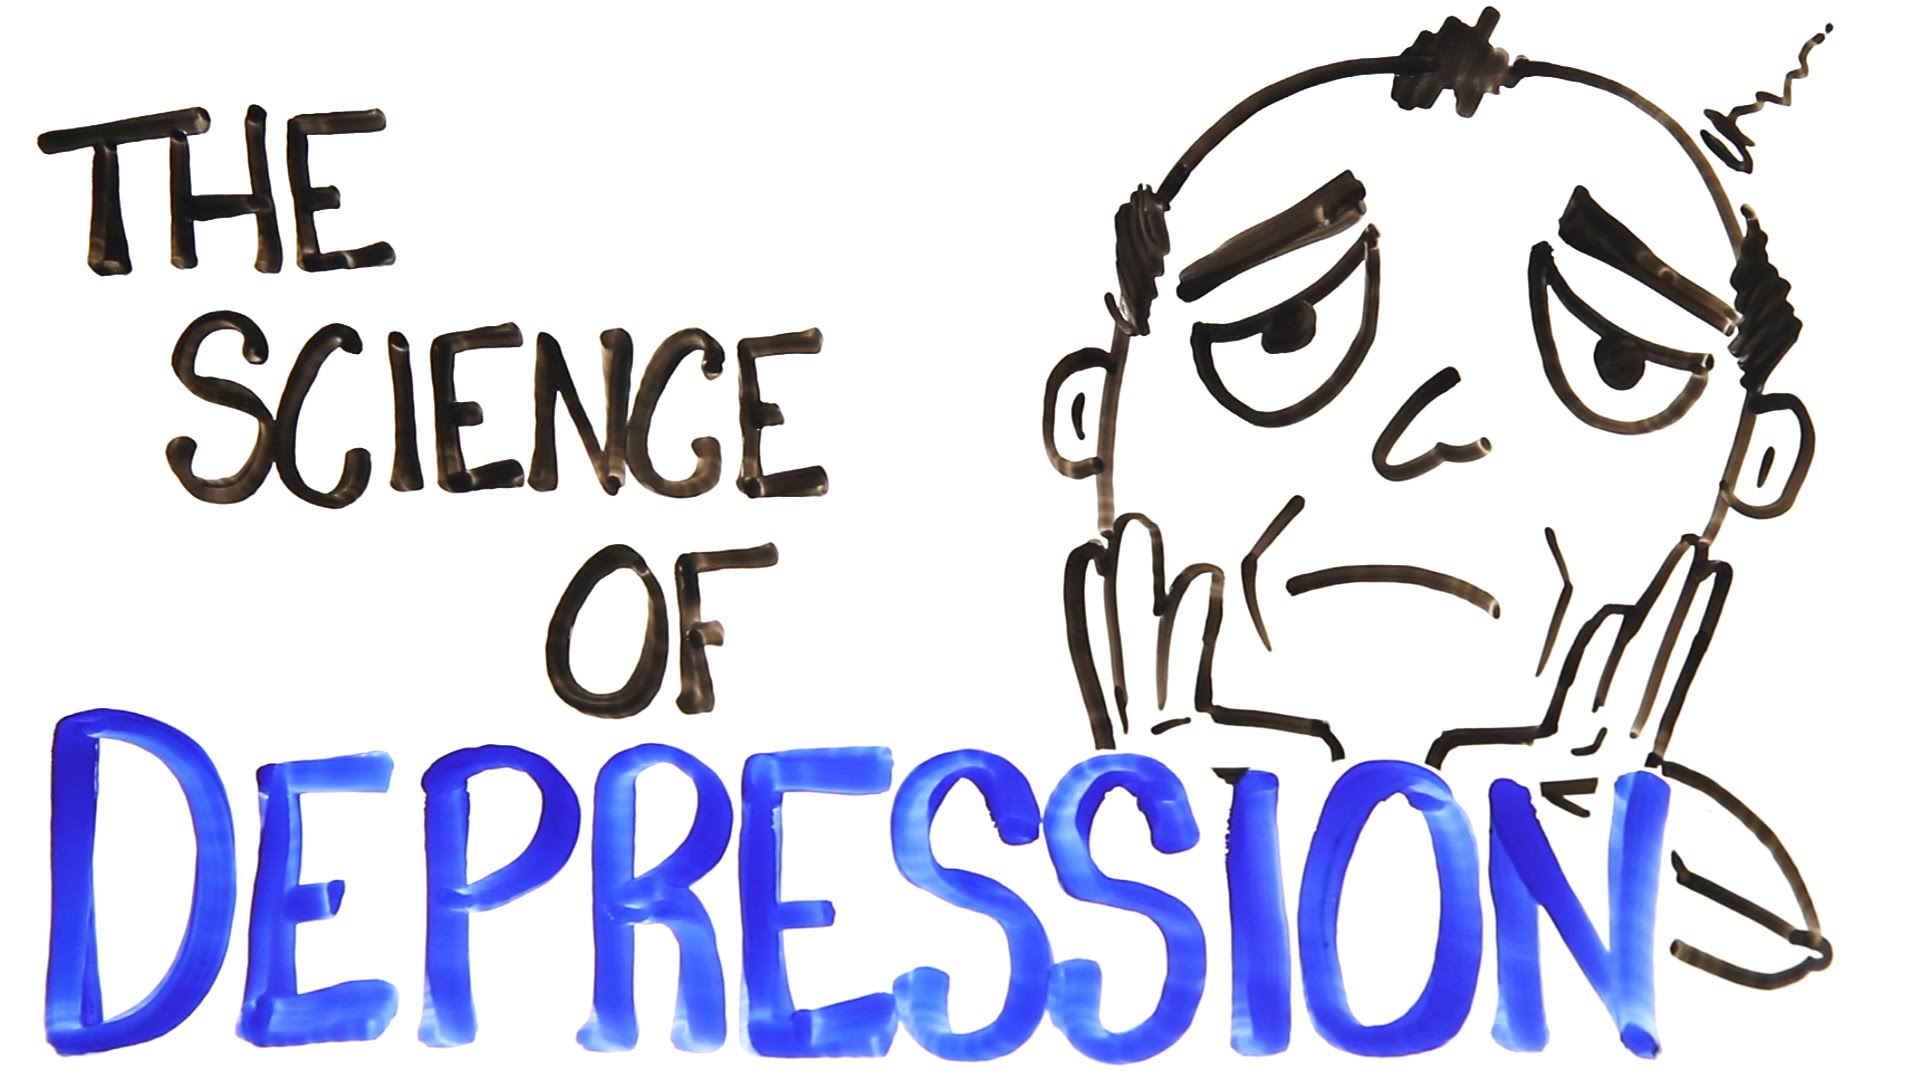 Depression: The Science of Depression [Video]